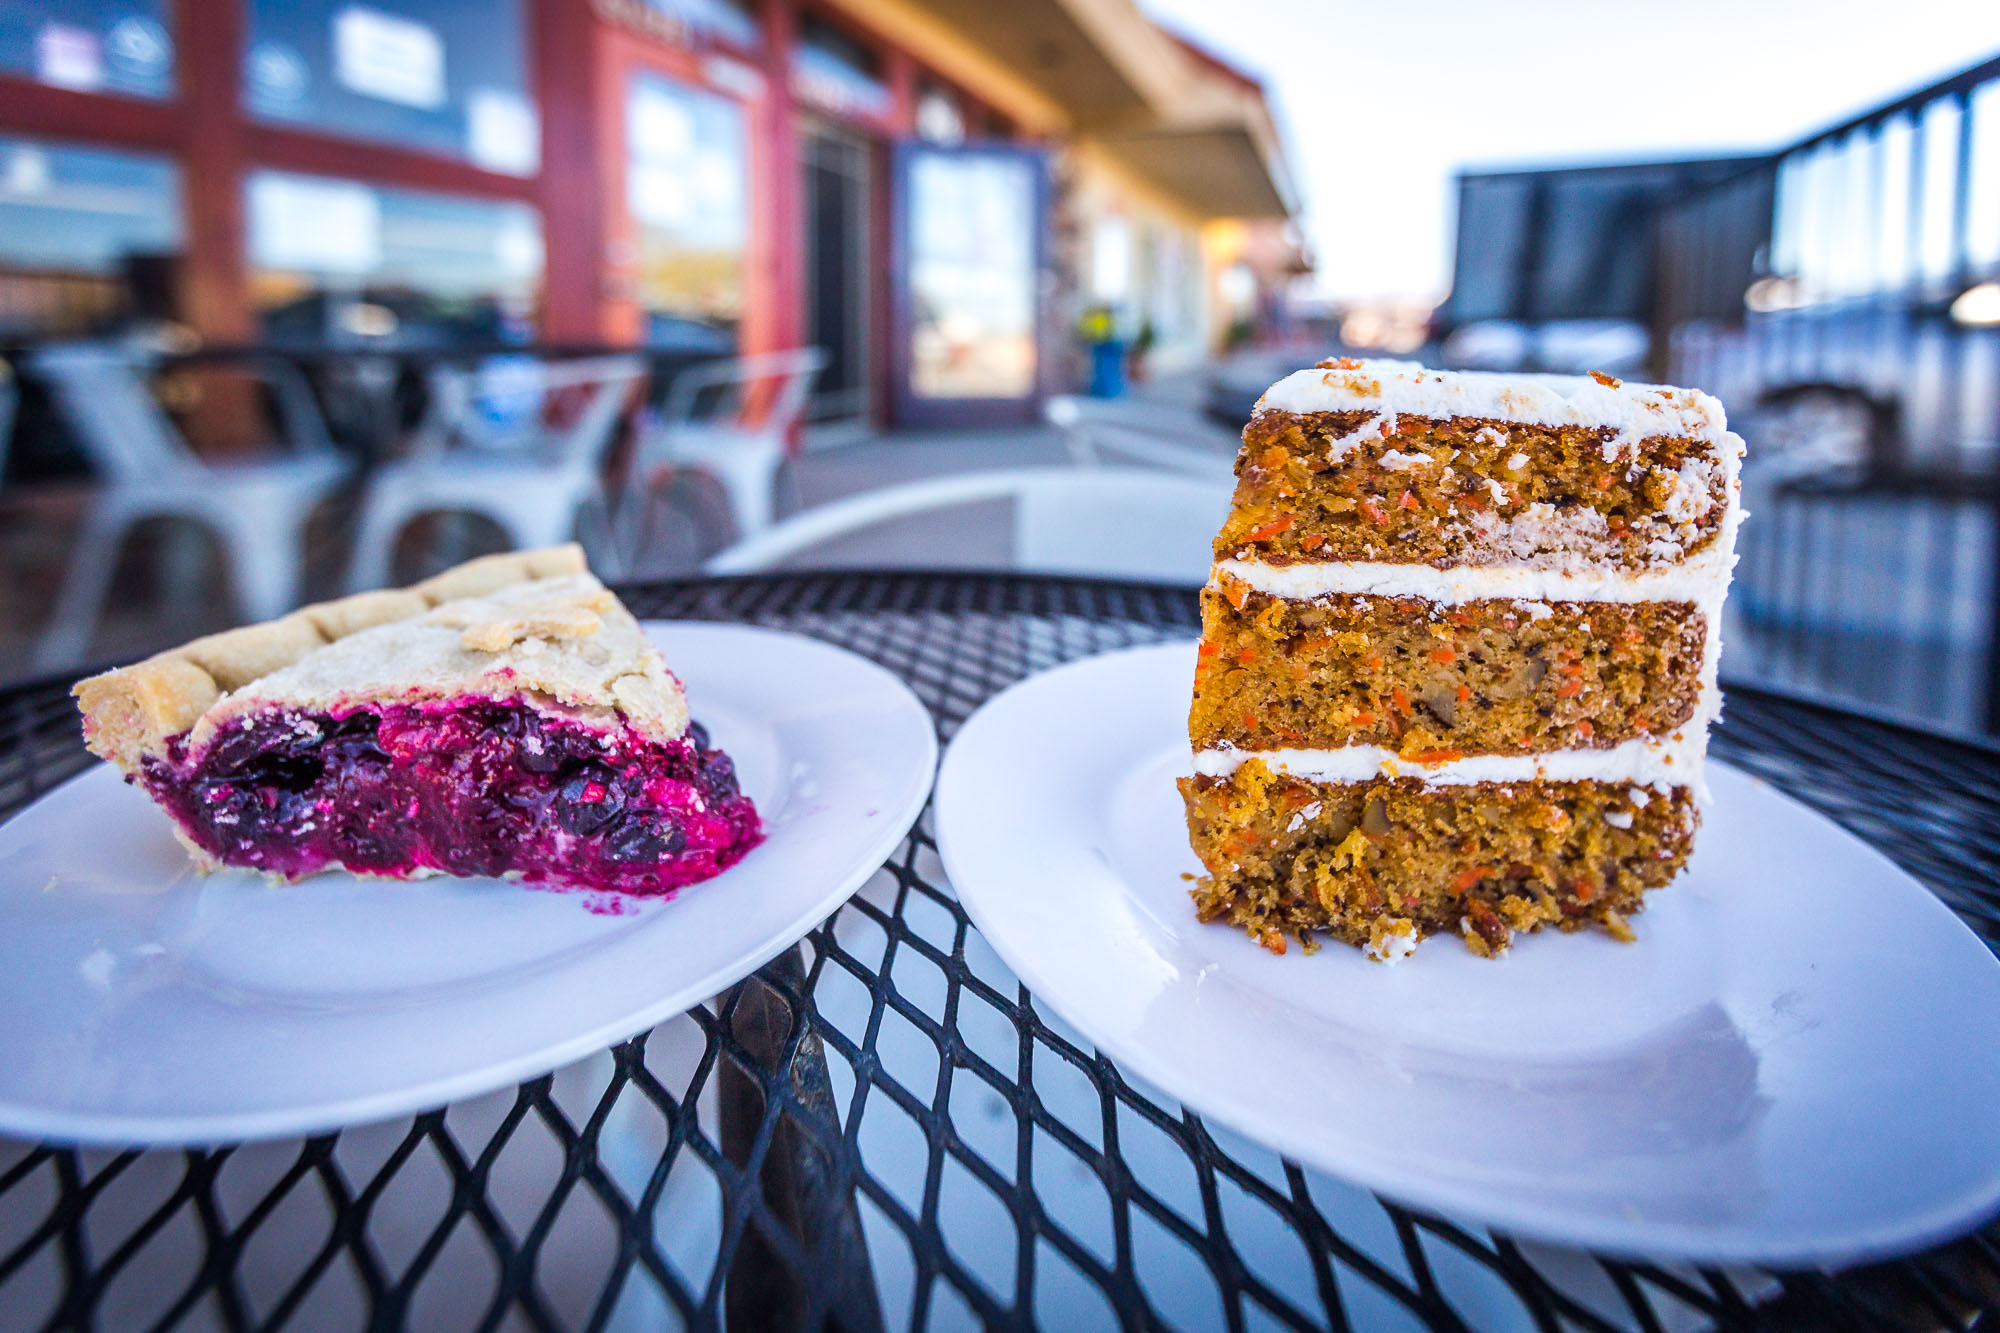 Vegan Mixed Berry Pie and Vegan Carrot Cake!! YUM!!!!!